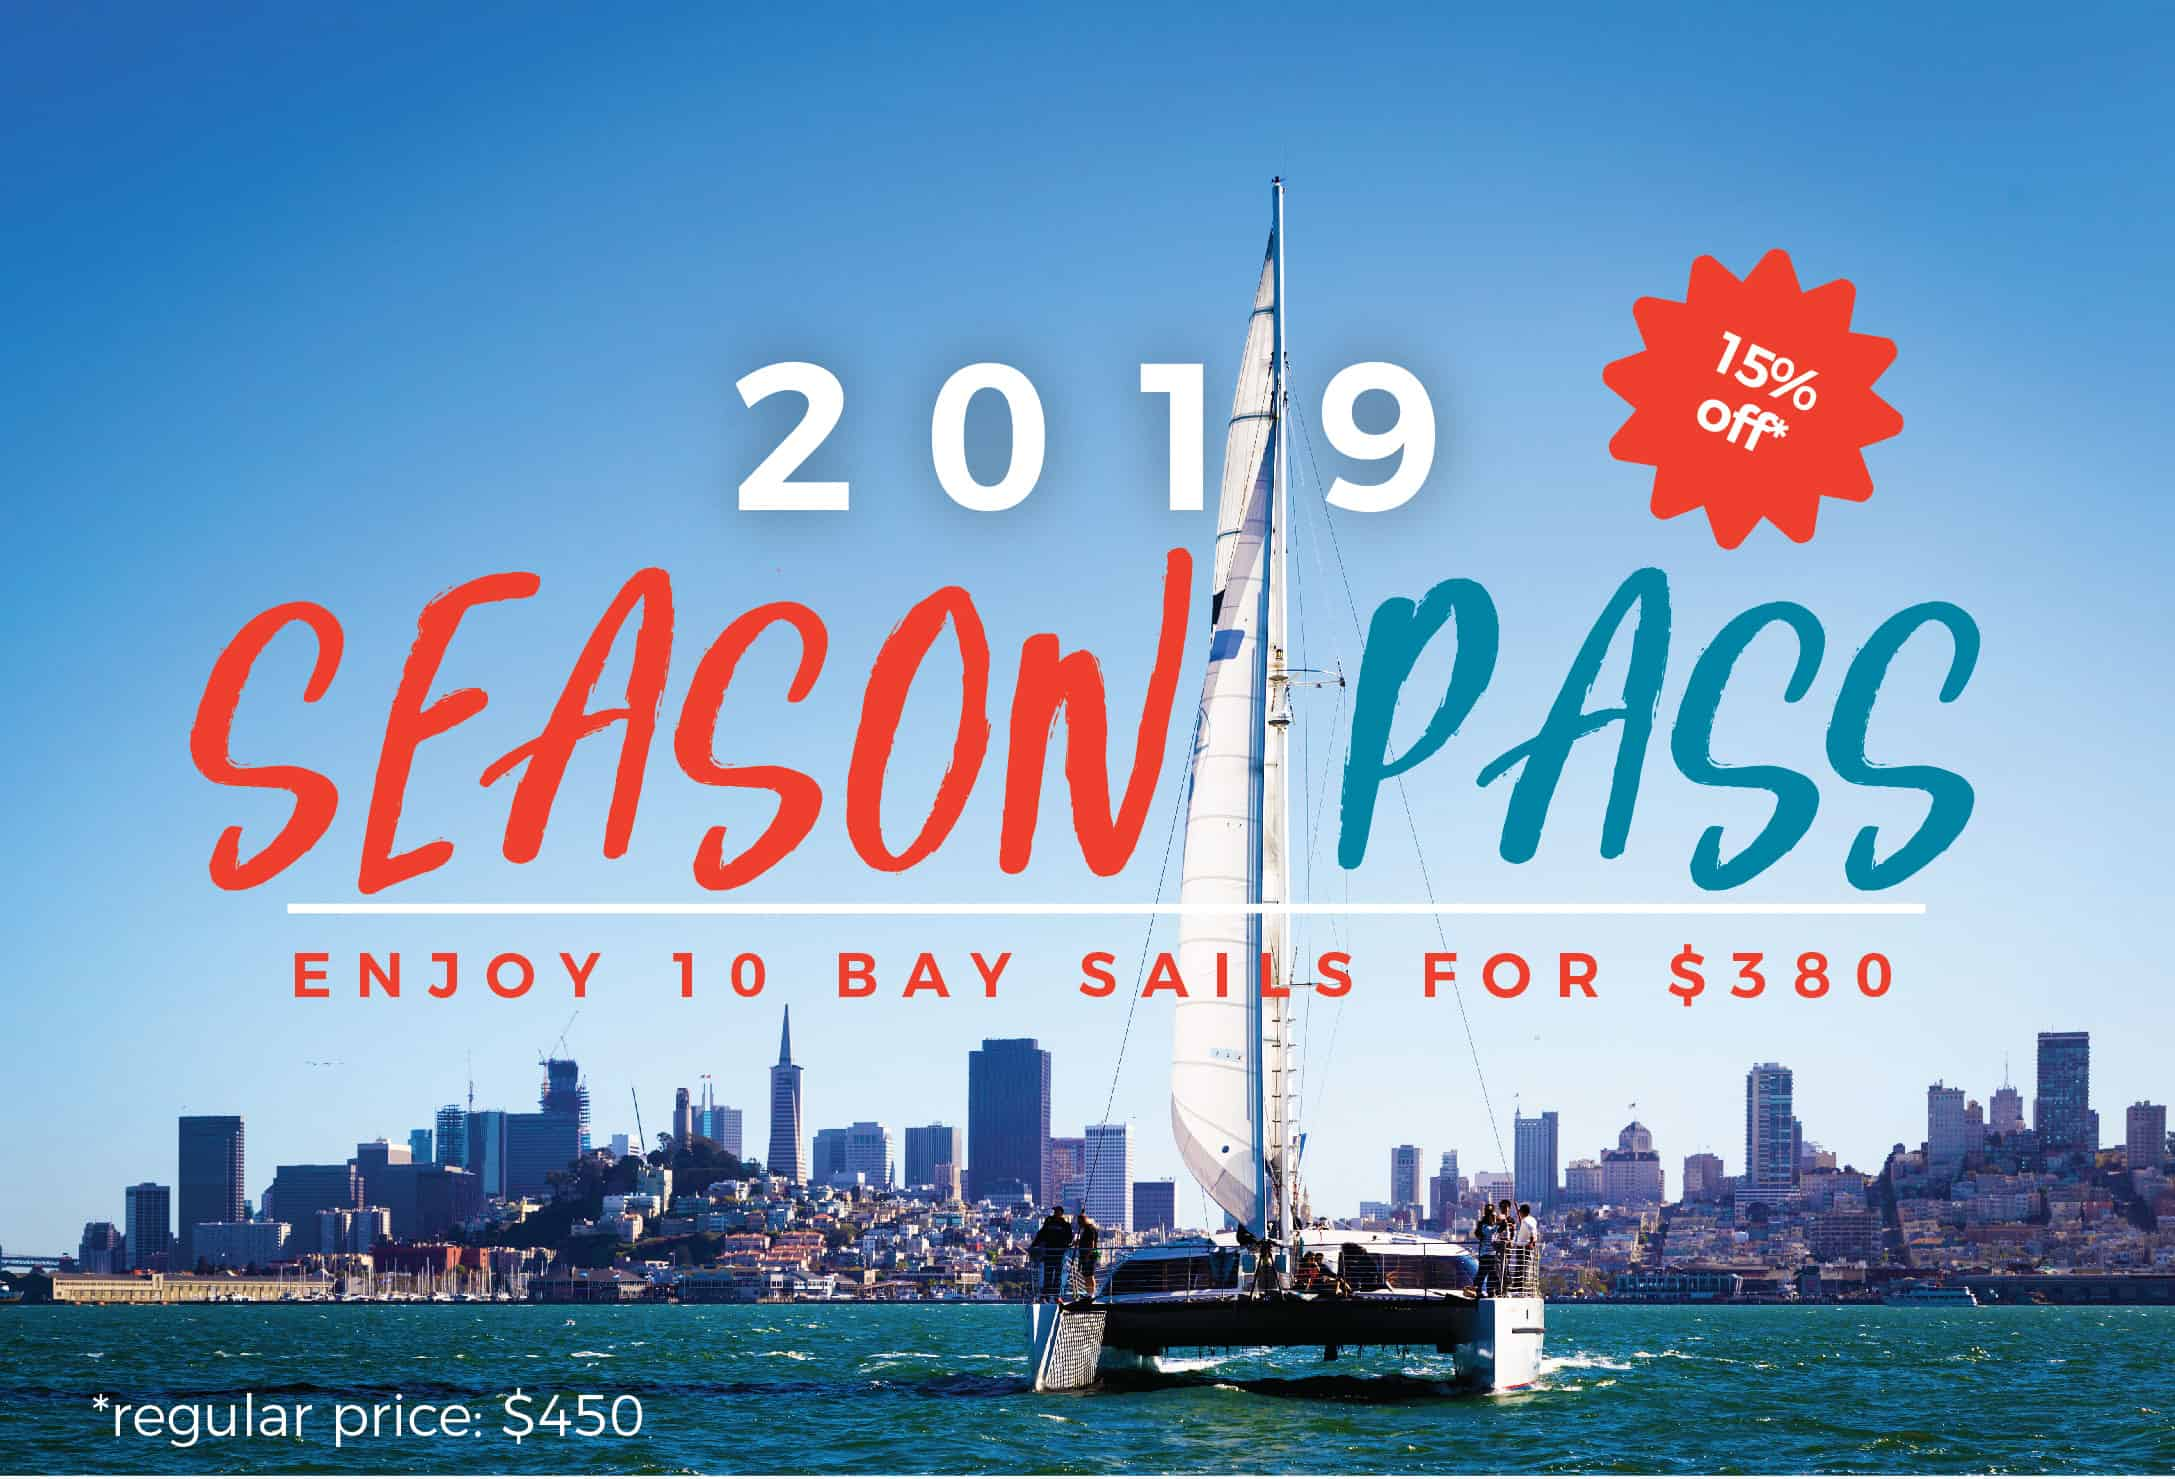 promotional graphic for the 2019 season pass offer from Adventure Cat